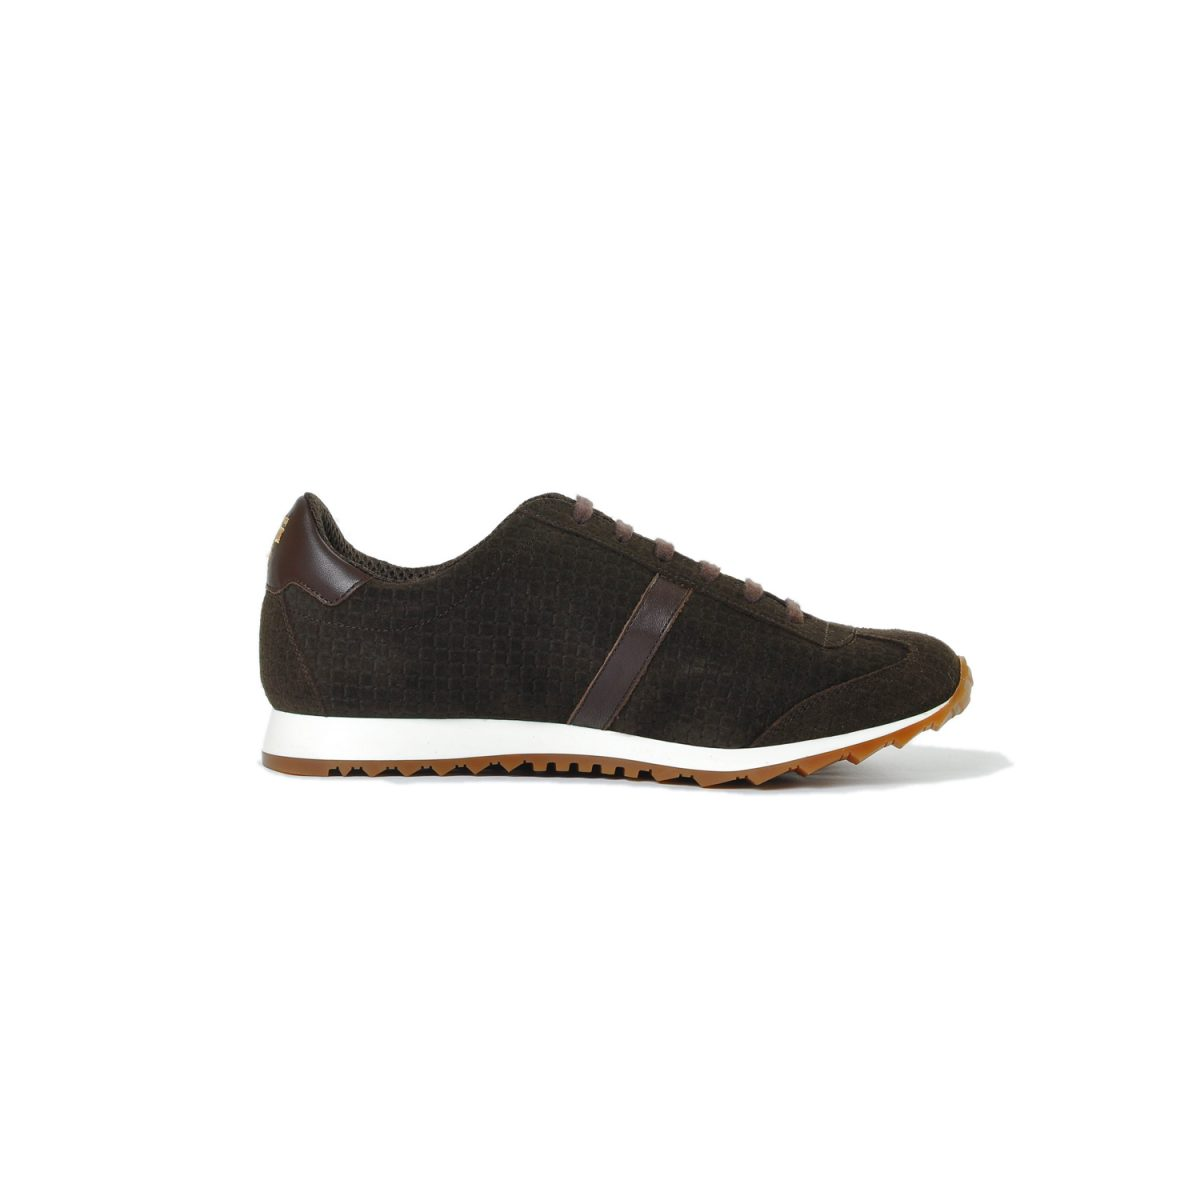 Tisza shoes - Martfű - Twisted-brown